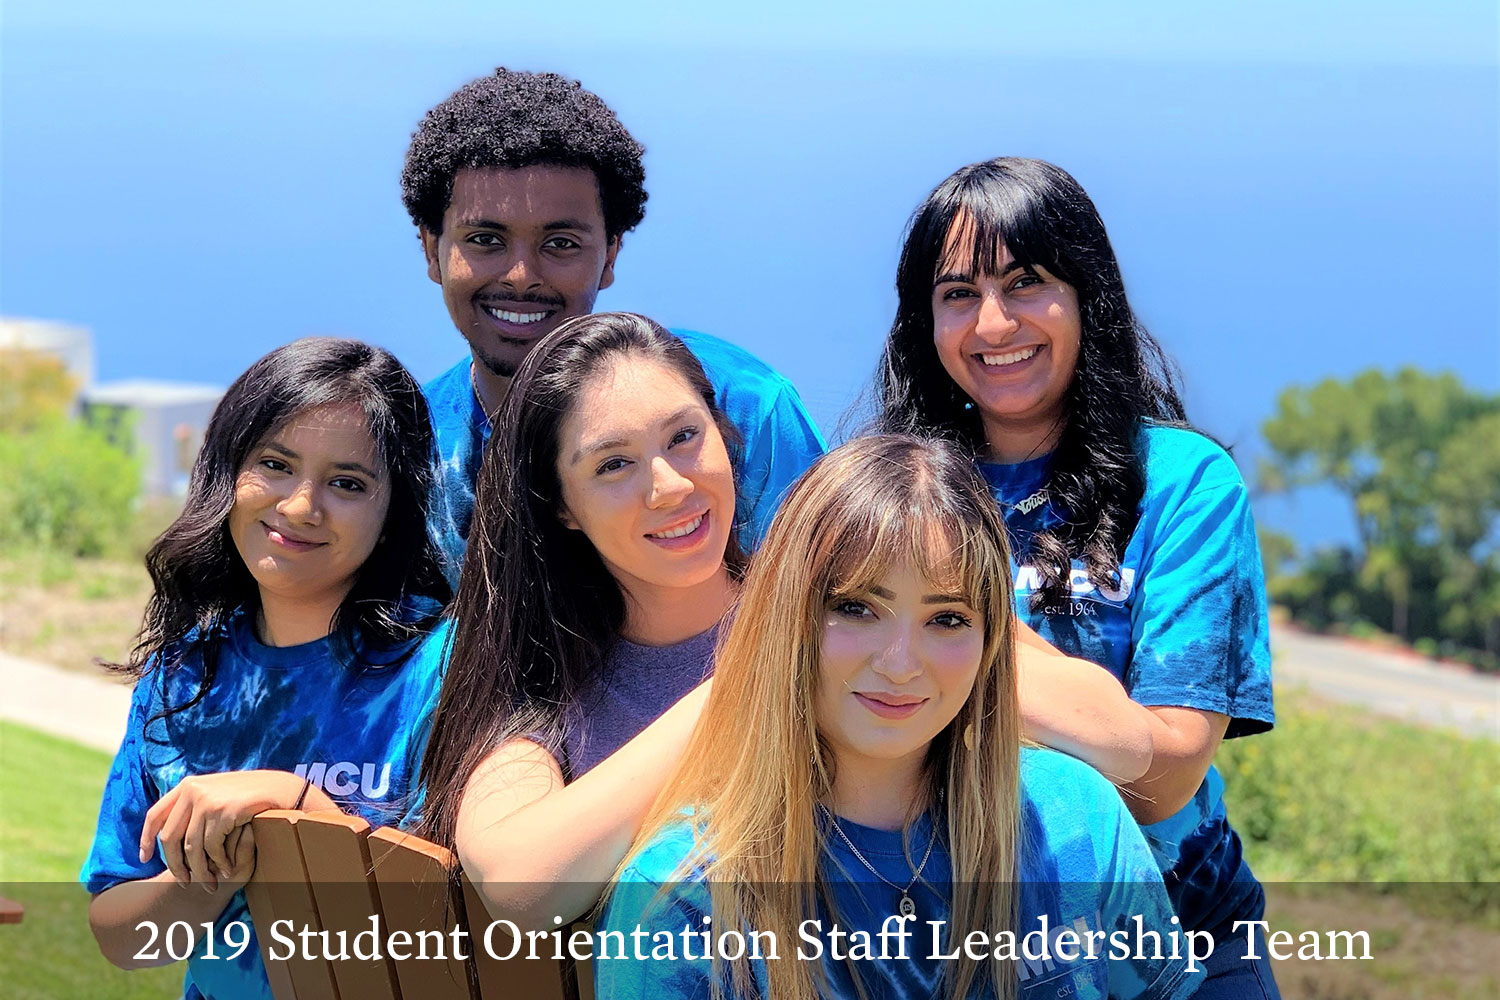 student orientation staff leadership team